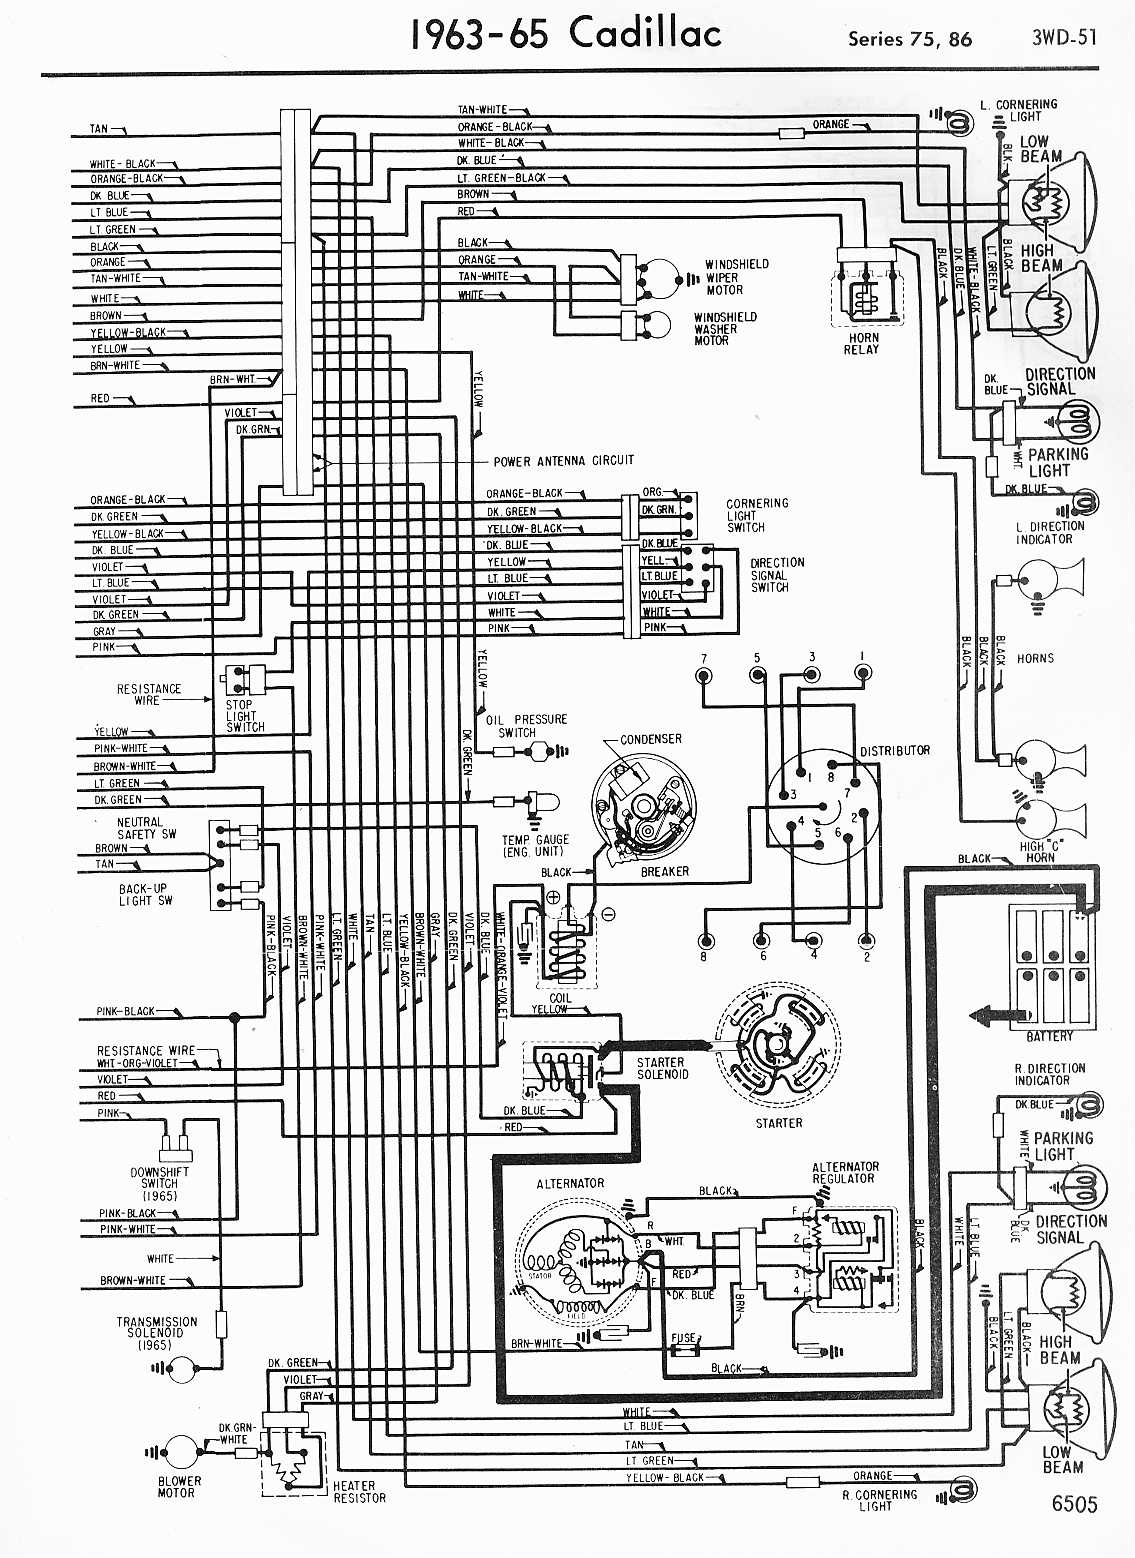 [DIAGRAM_38YU]  Cadillac Wiring Diagrams: 1957-1965 | Cadillac Electrical Wiring Diagrams |  | The Old Car Manual Project